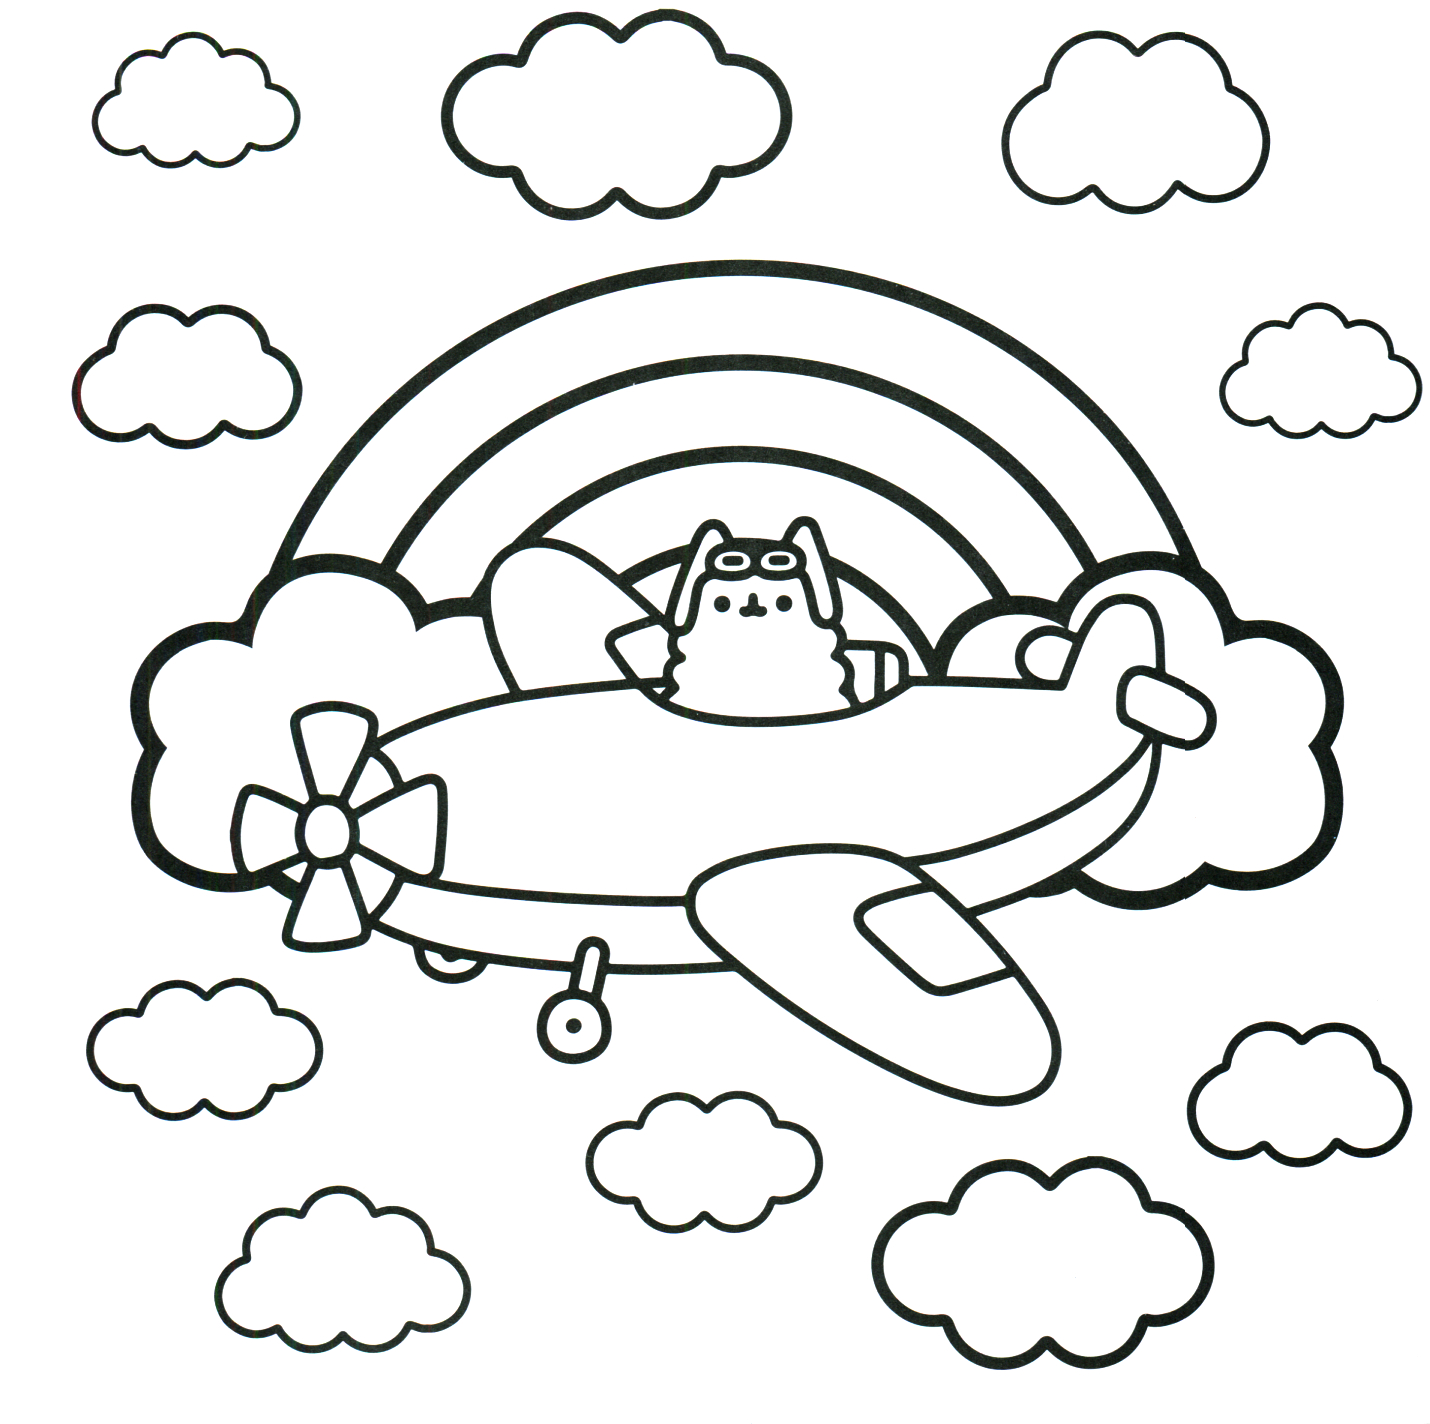 Pusheen Cat Coloring Pages Pusheen Coloring Pages Best Coloring Pages For Kids